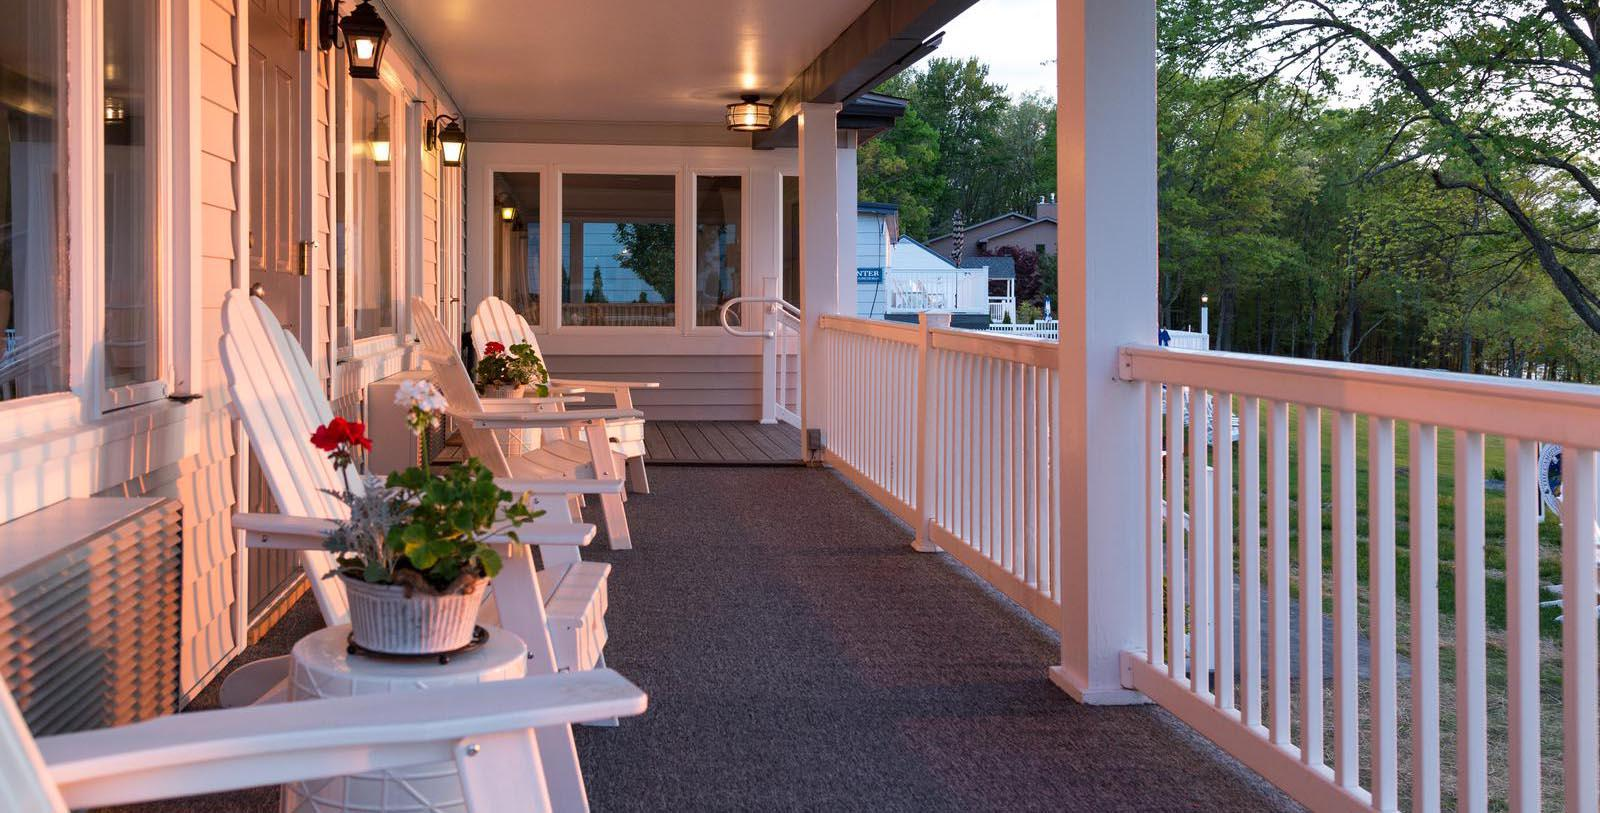 Image of Porch Silver Birches,1929 Member of Historic Hotels of America, in Hawley, Pennsylvania, Hot Deals